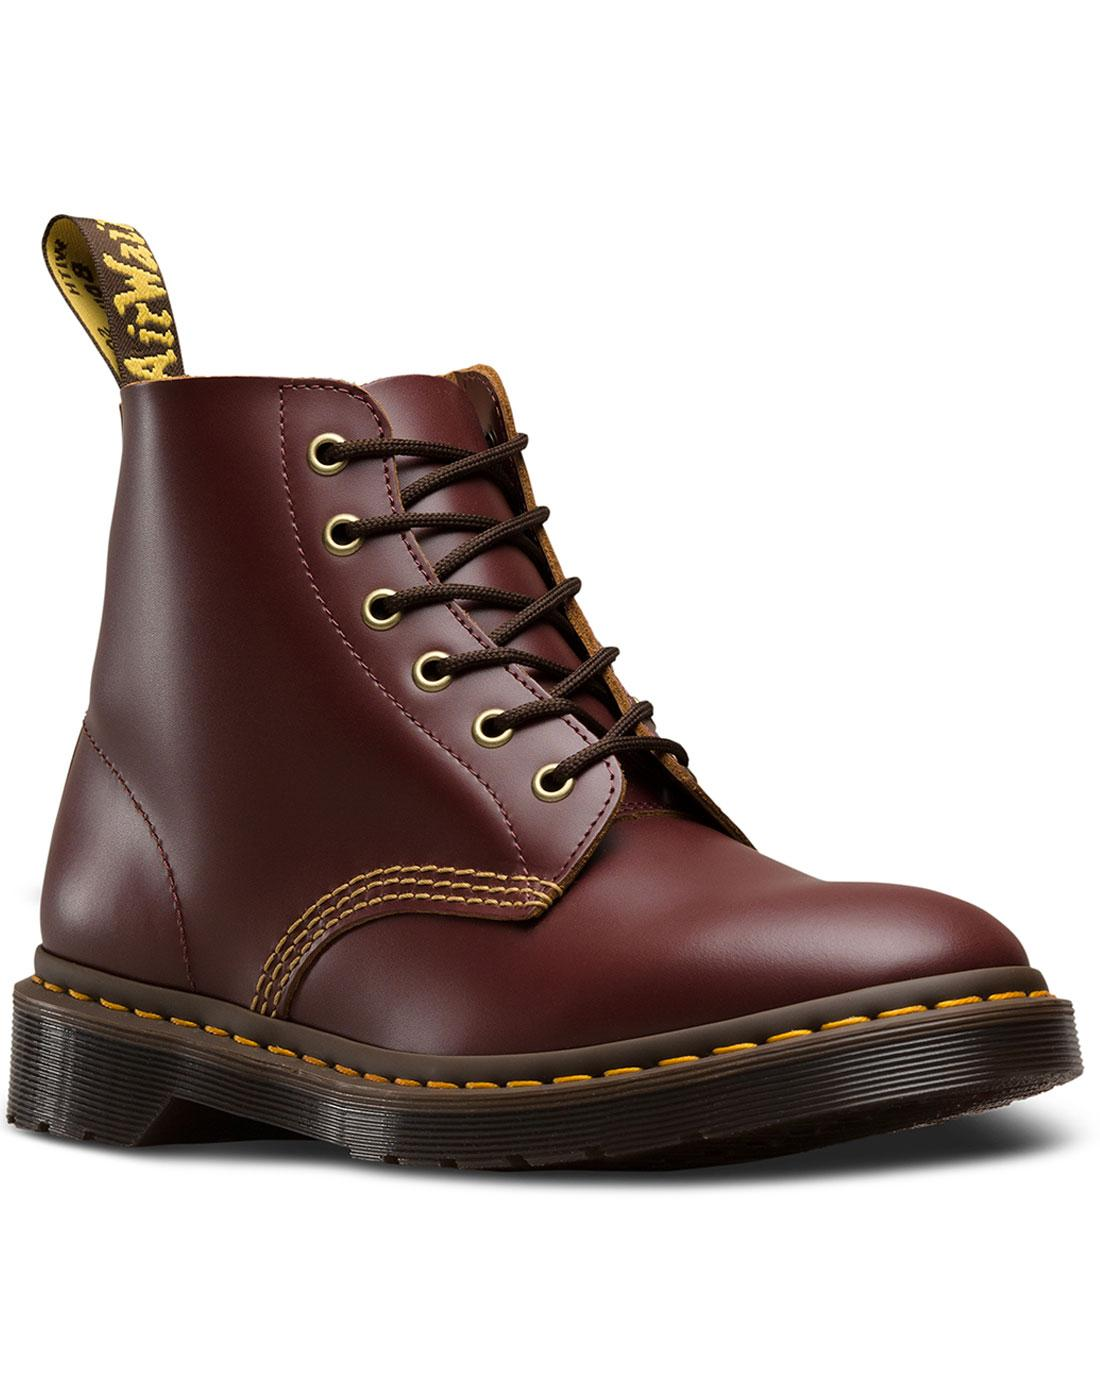 101 Archive DR MARTENS Mod 6 Eyelet Ankle Boots O